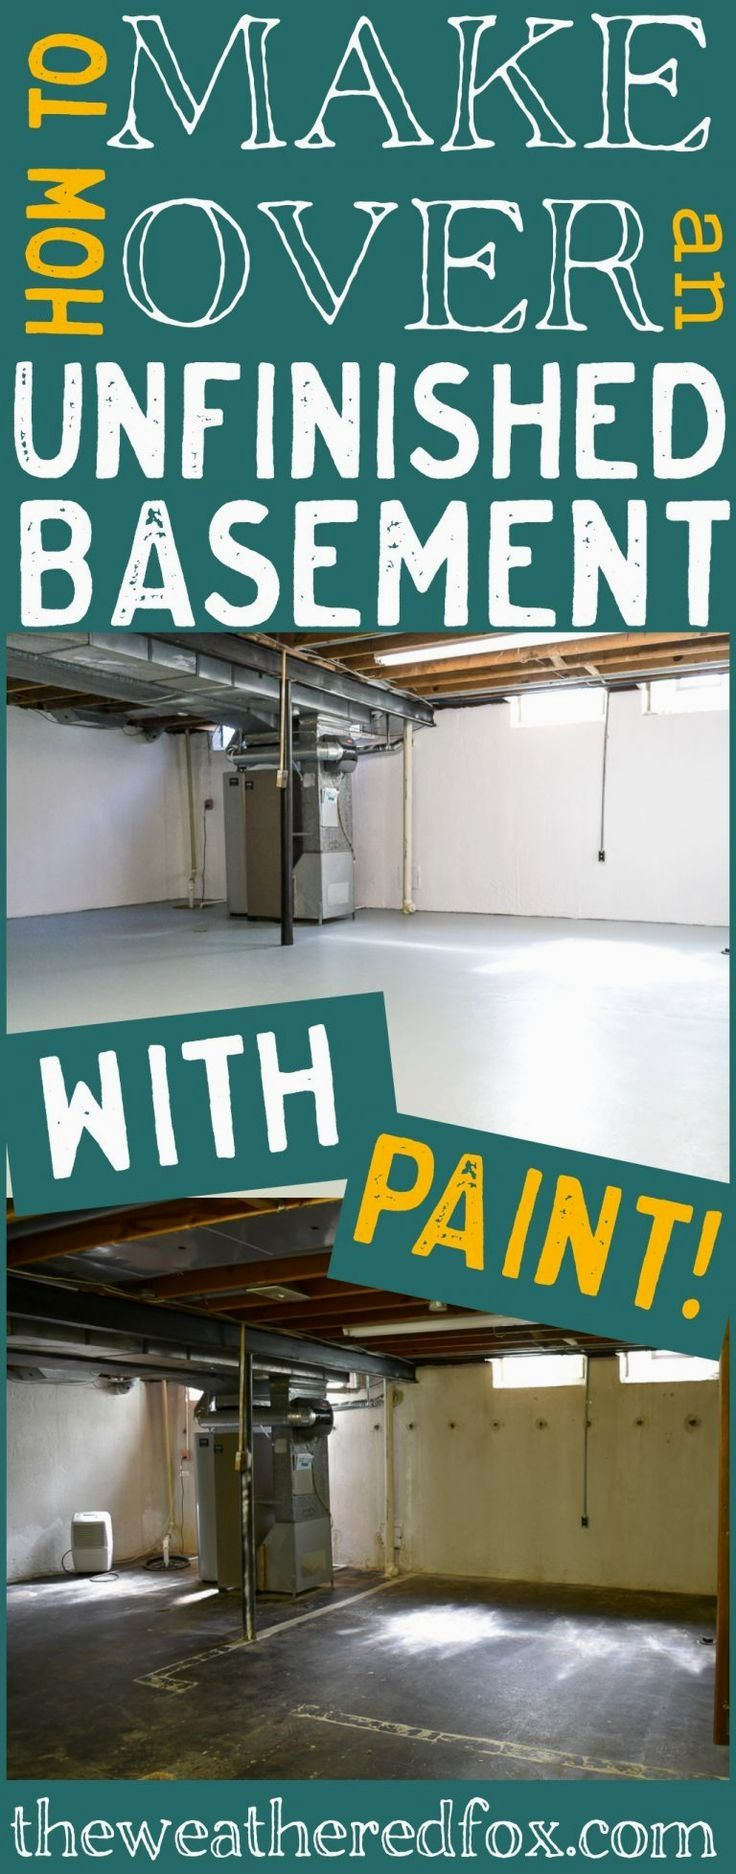 The Simple Trick To Get Your House Sold With An Unfinished Basement images